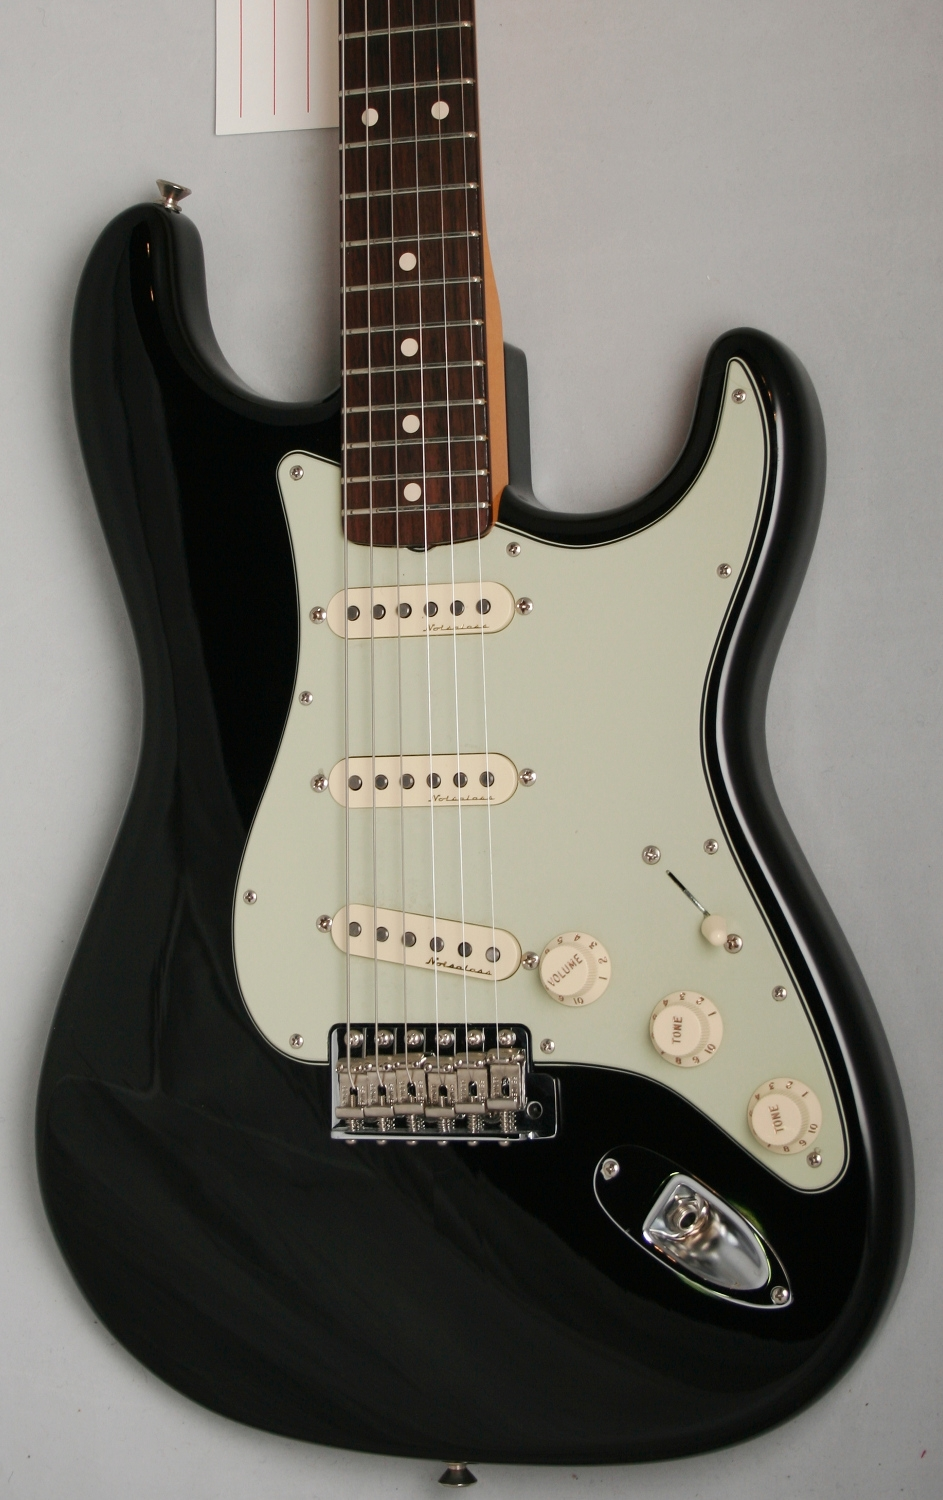 Pretty Strat Style Guitar Small Ibanez Wiring Round Dragonfire Pickups Wiring Diagram Les Paul 3 Pickup Wiring Old Dimarzio Color Code ColouredCar Alarm Installation Instructions Fender Custom Shop \u002760s Stratocaster With Clapton Electronics NOS ..